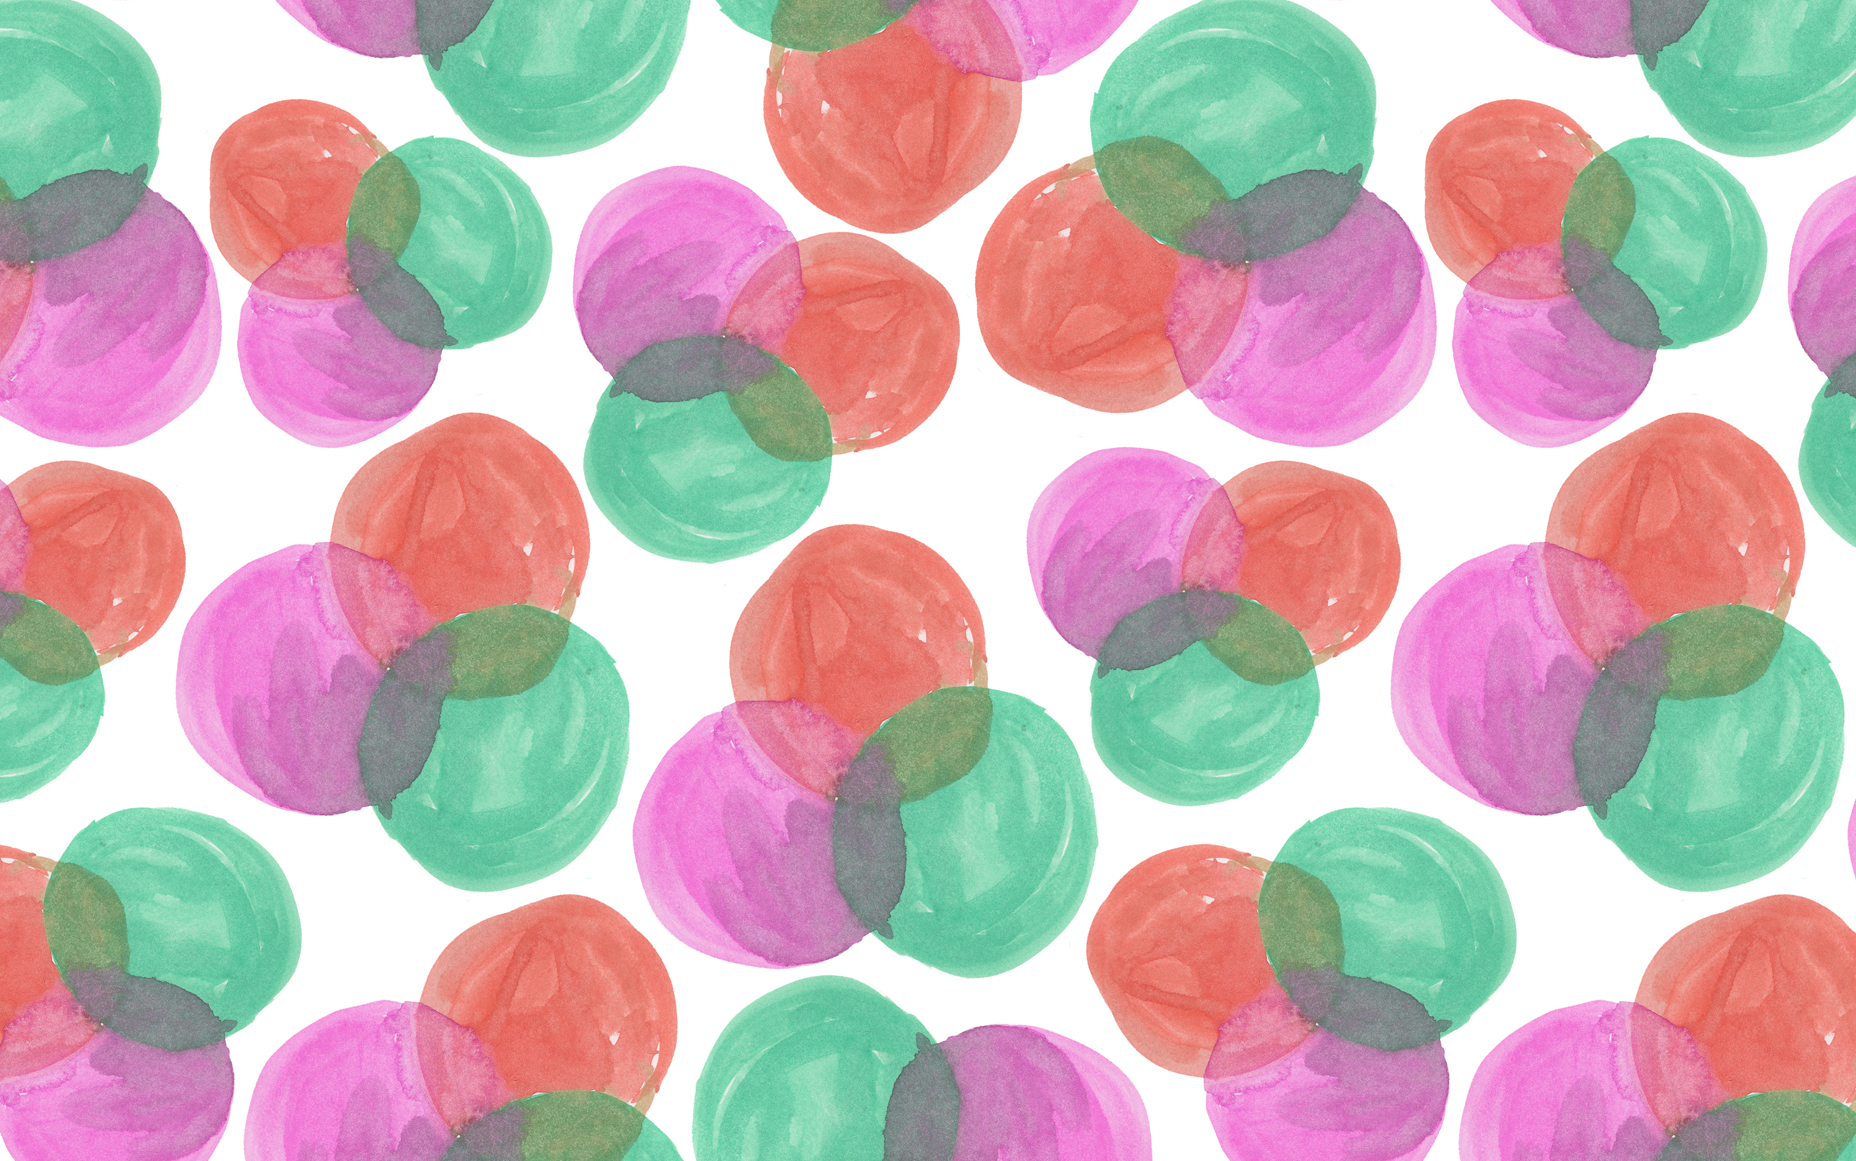 watercolor circles desktop wallpaper art desktop wallpaper pinterest watercolor wallpaper and wallpaper backgrounds